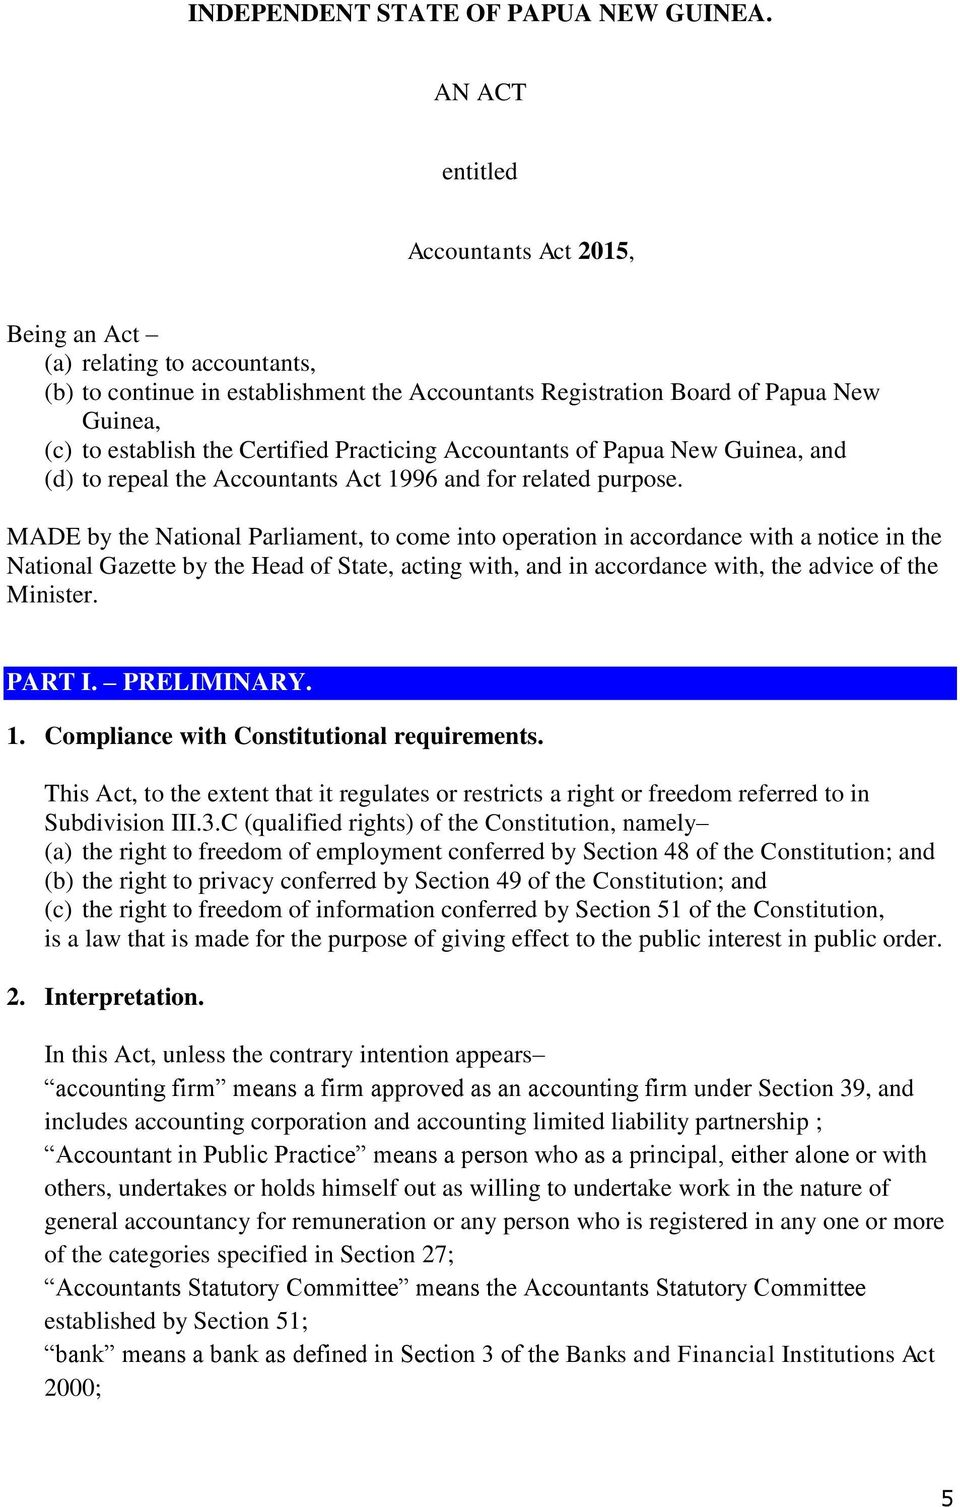 Practicing Accountants of Papua New Guinea, and (d) to repeal the Accountants Act 1996 and for related purpose.